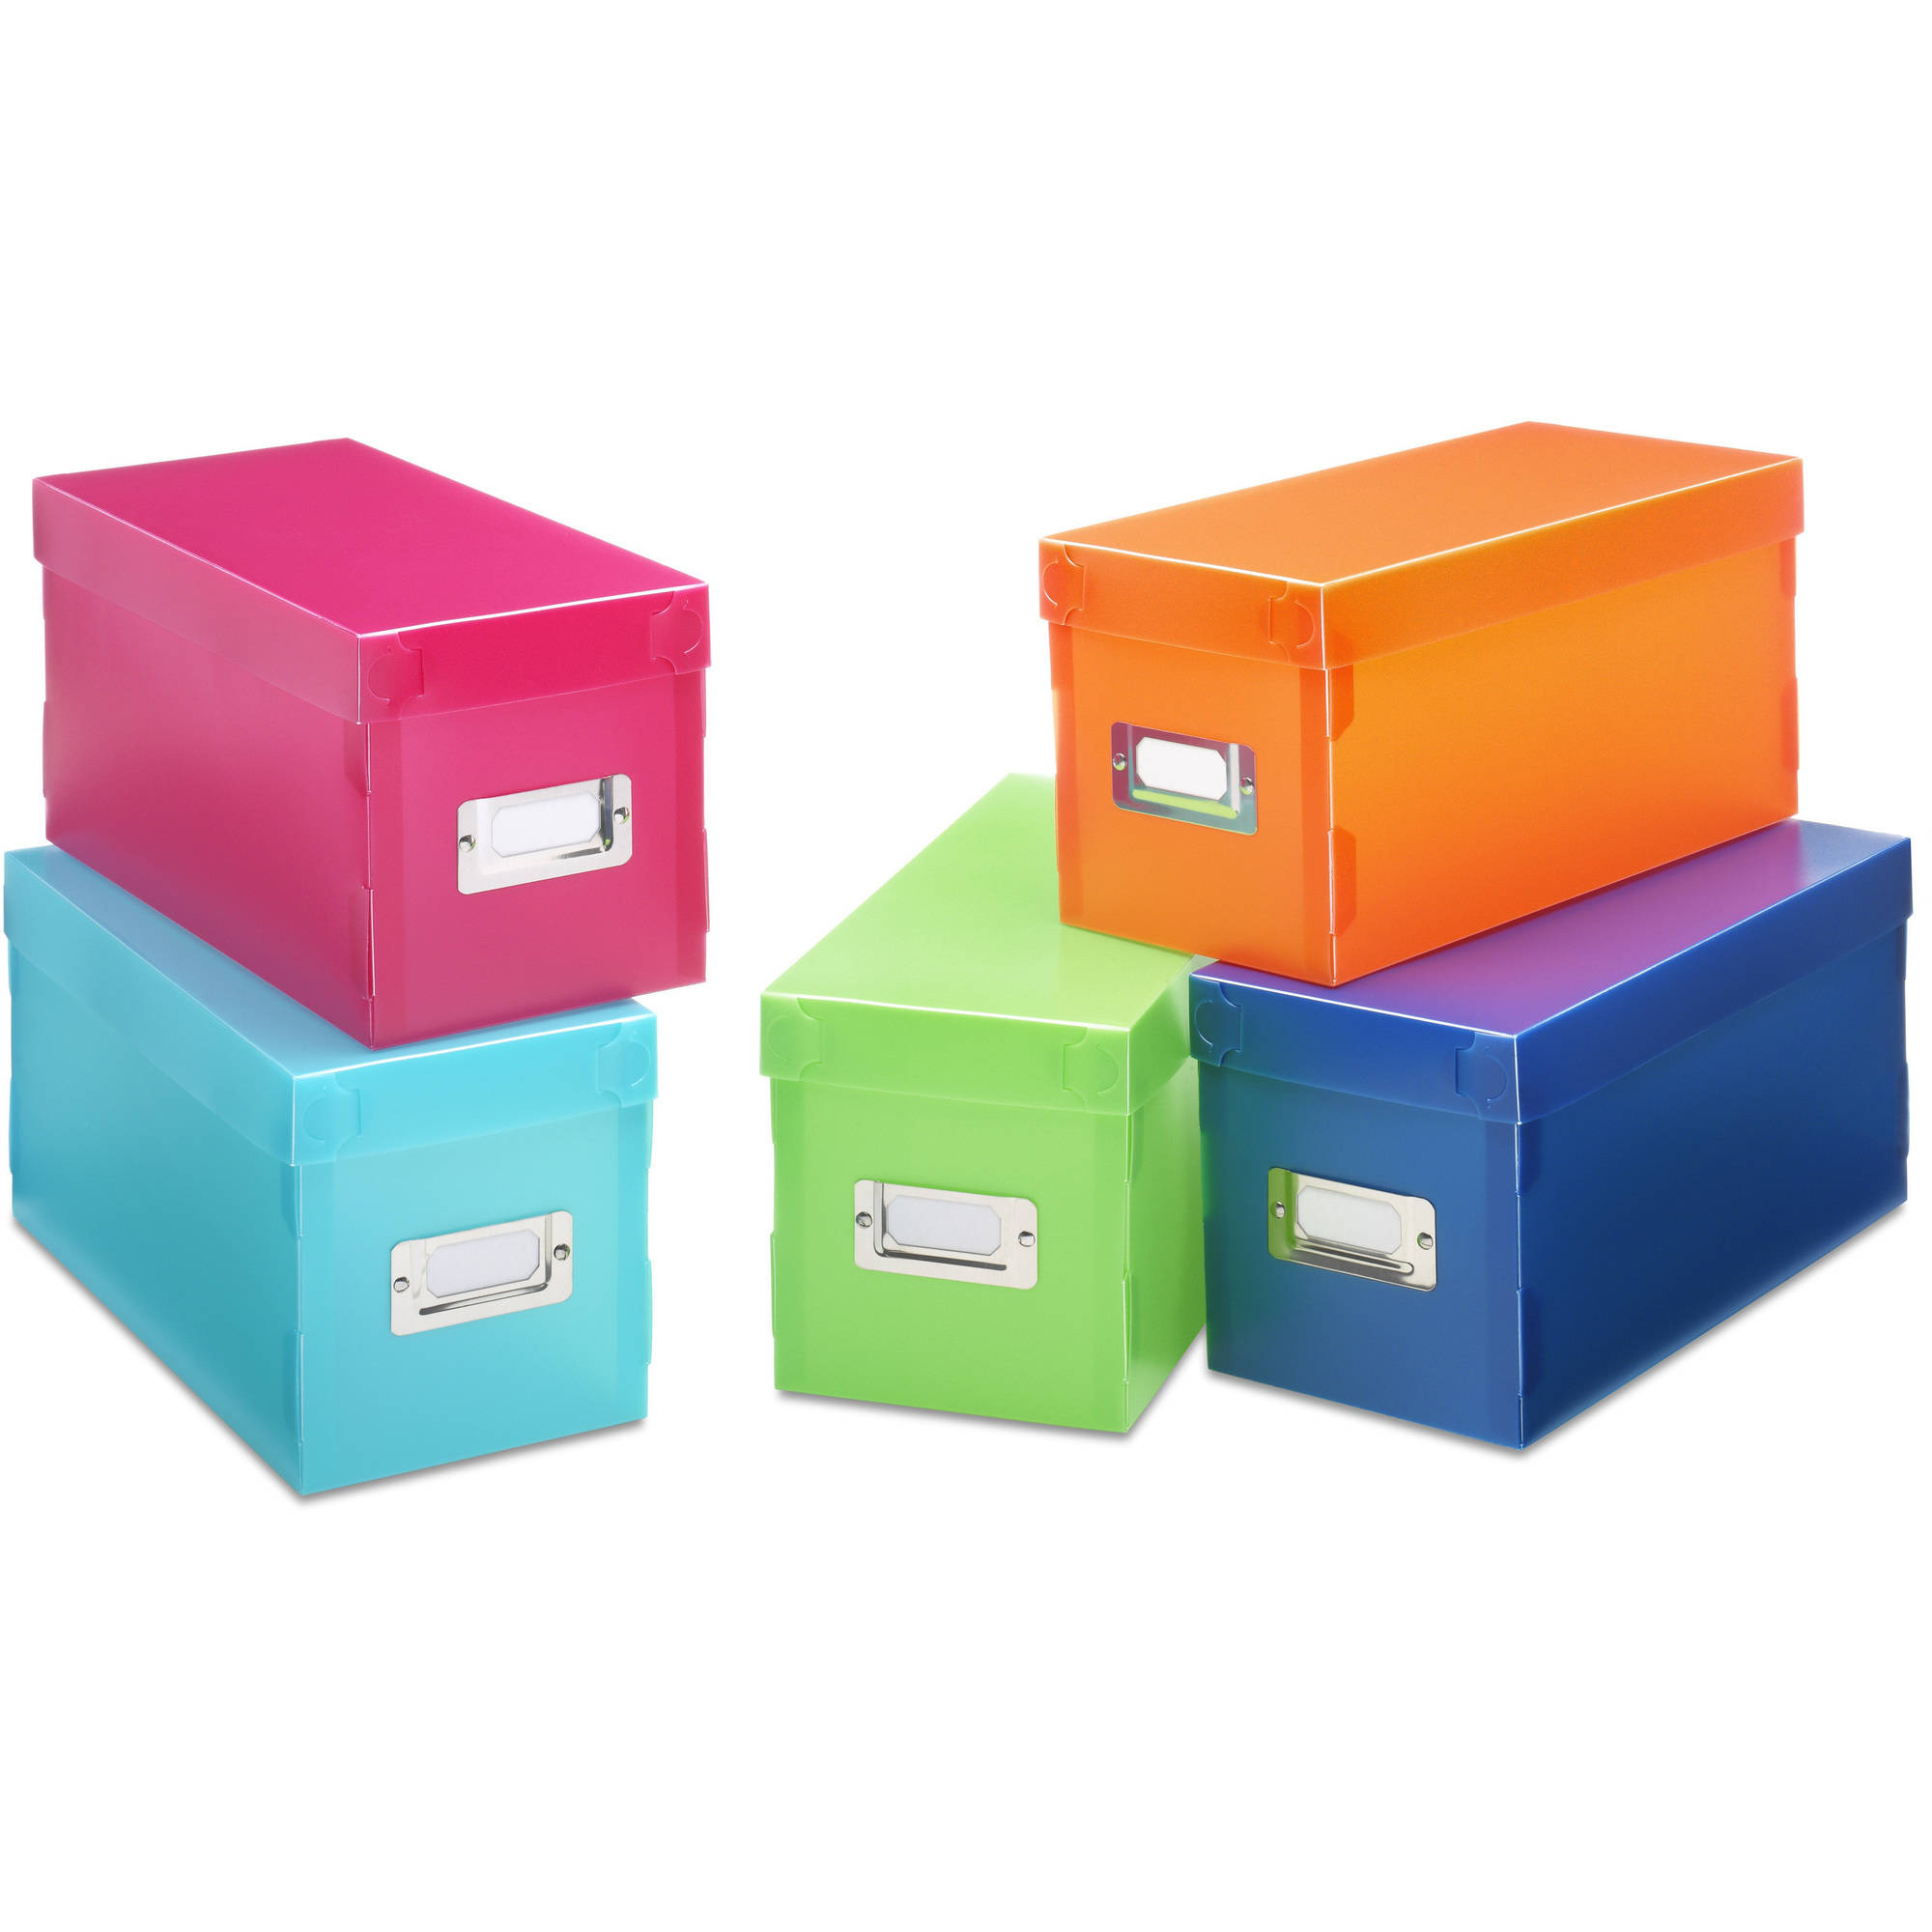 5-Piece Plastic Storage Boxes